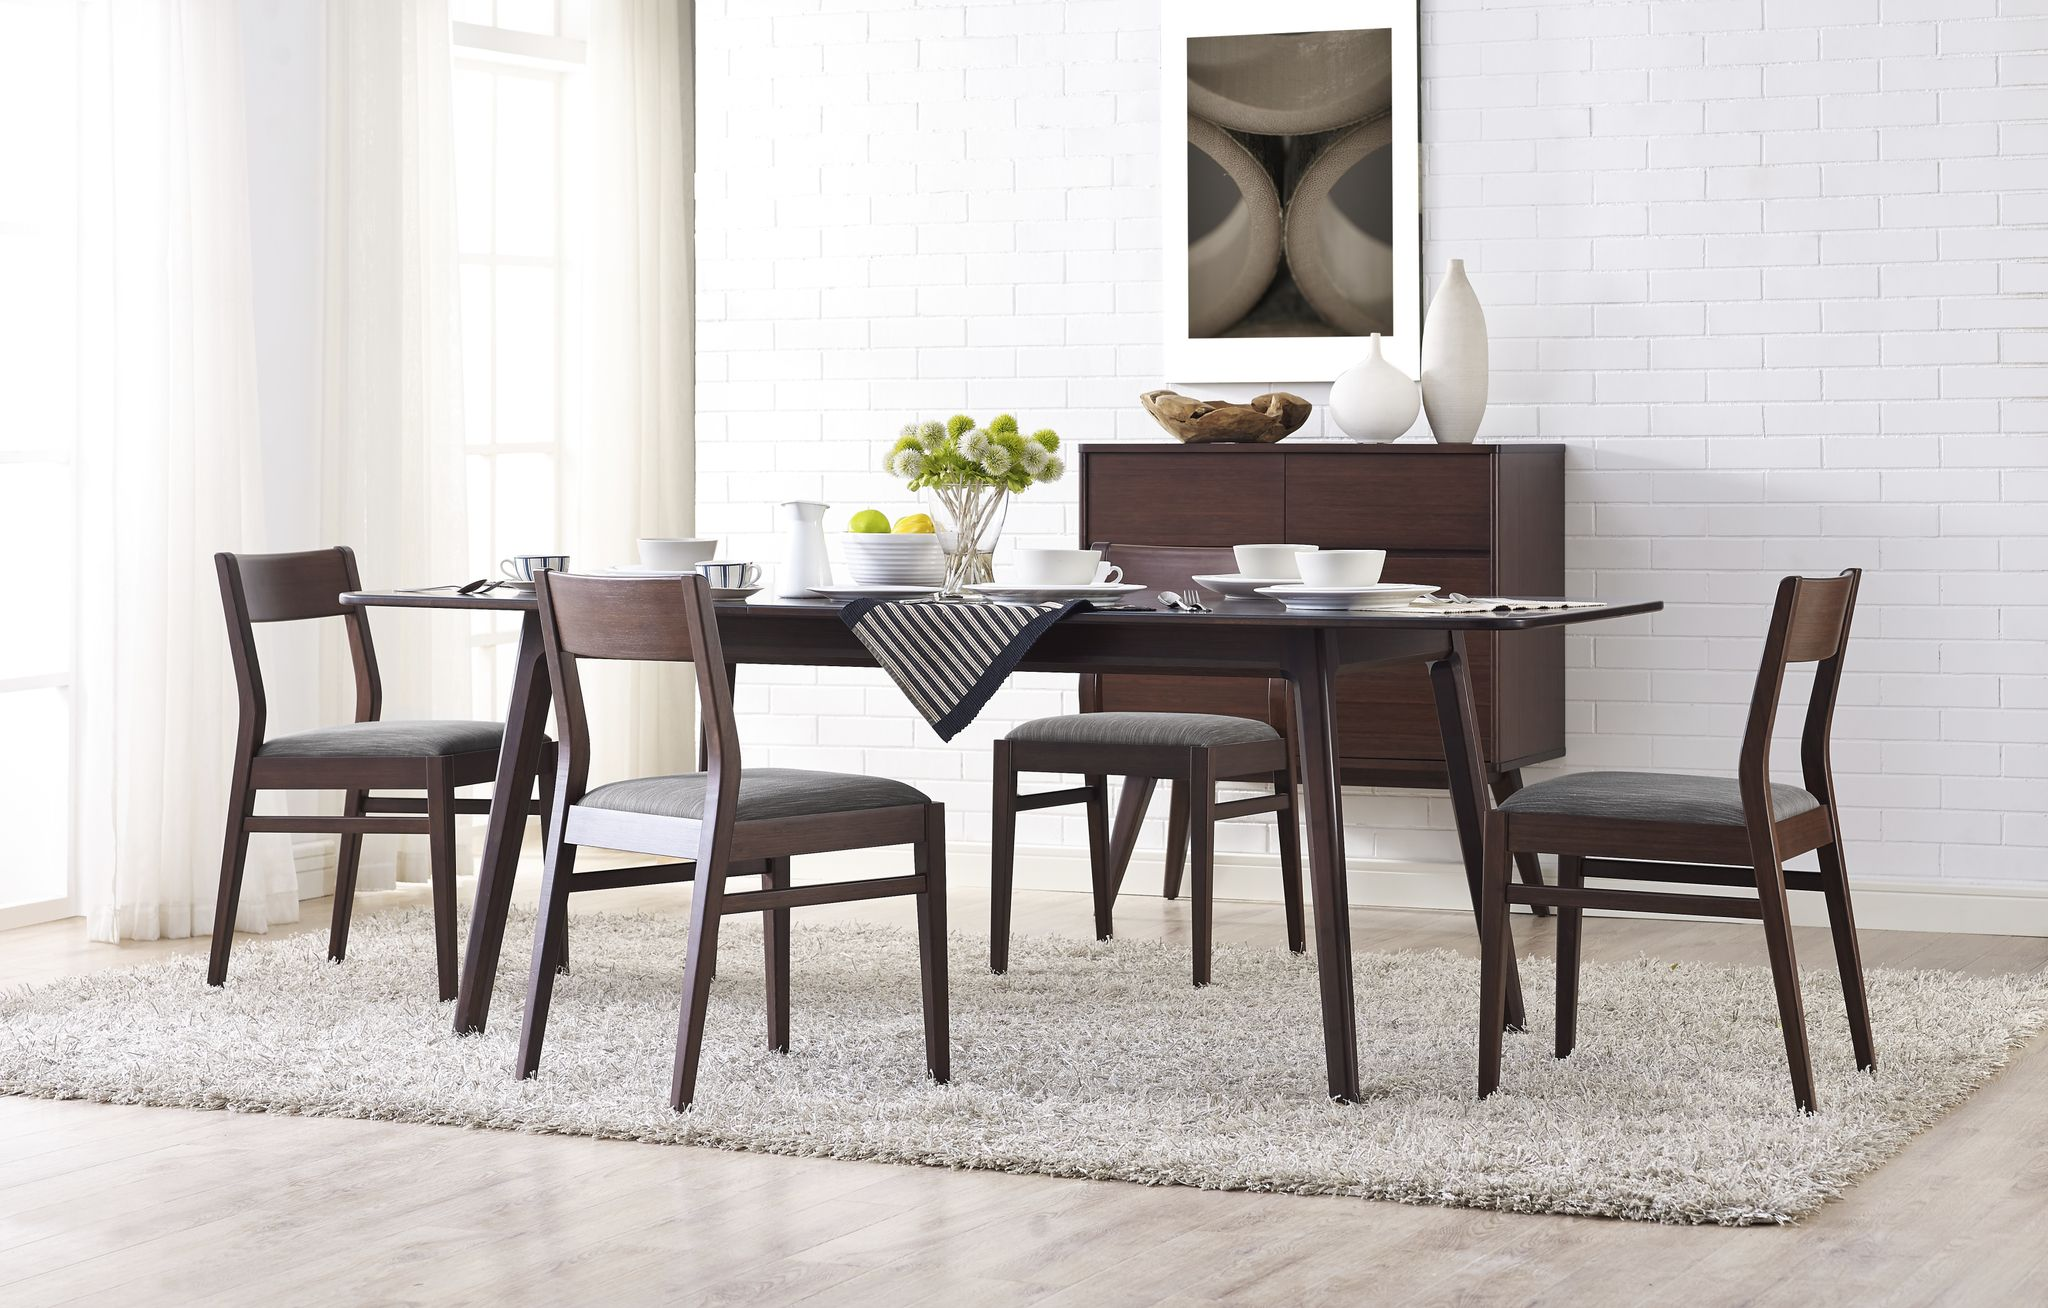 Ambre Extendable Dining Table Showcasing Beautiful Solid Bamboo Grain The Ambre Dining Table Features Dining Chairs Dining Chair Set Extendable Dining Table